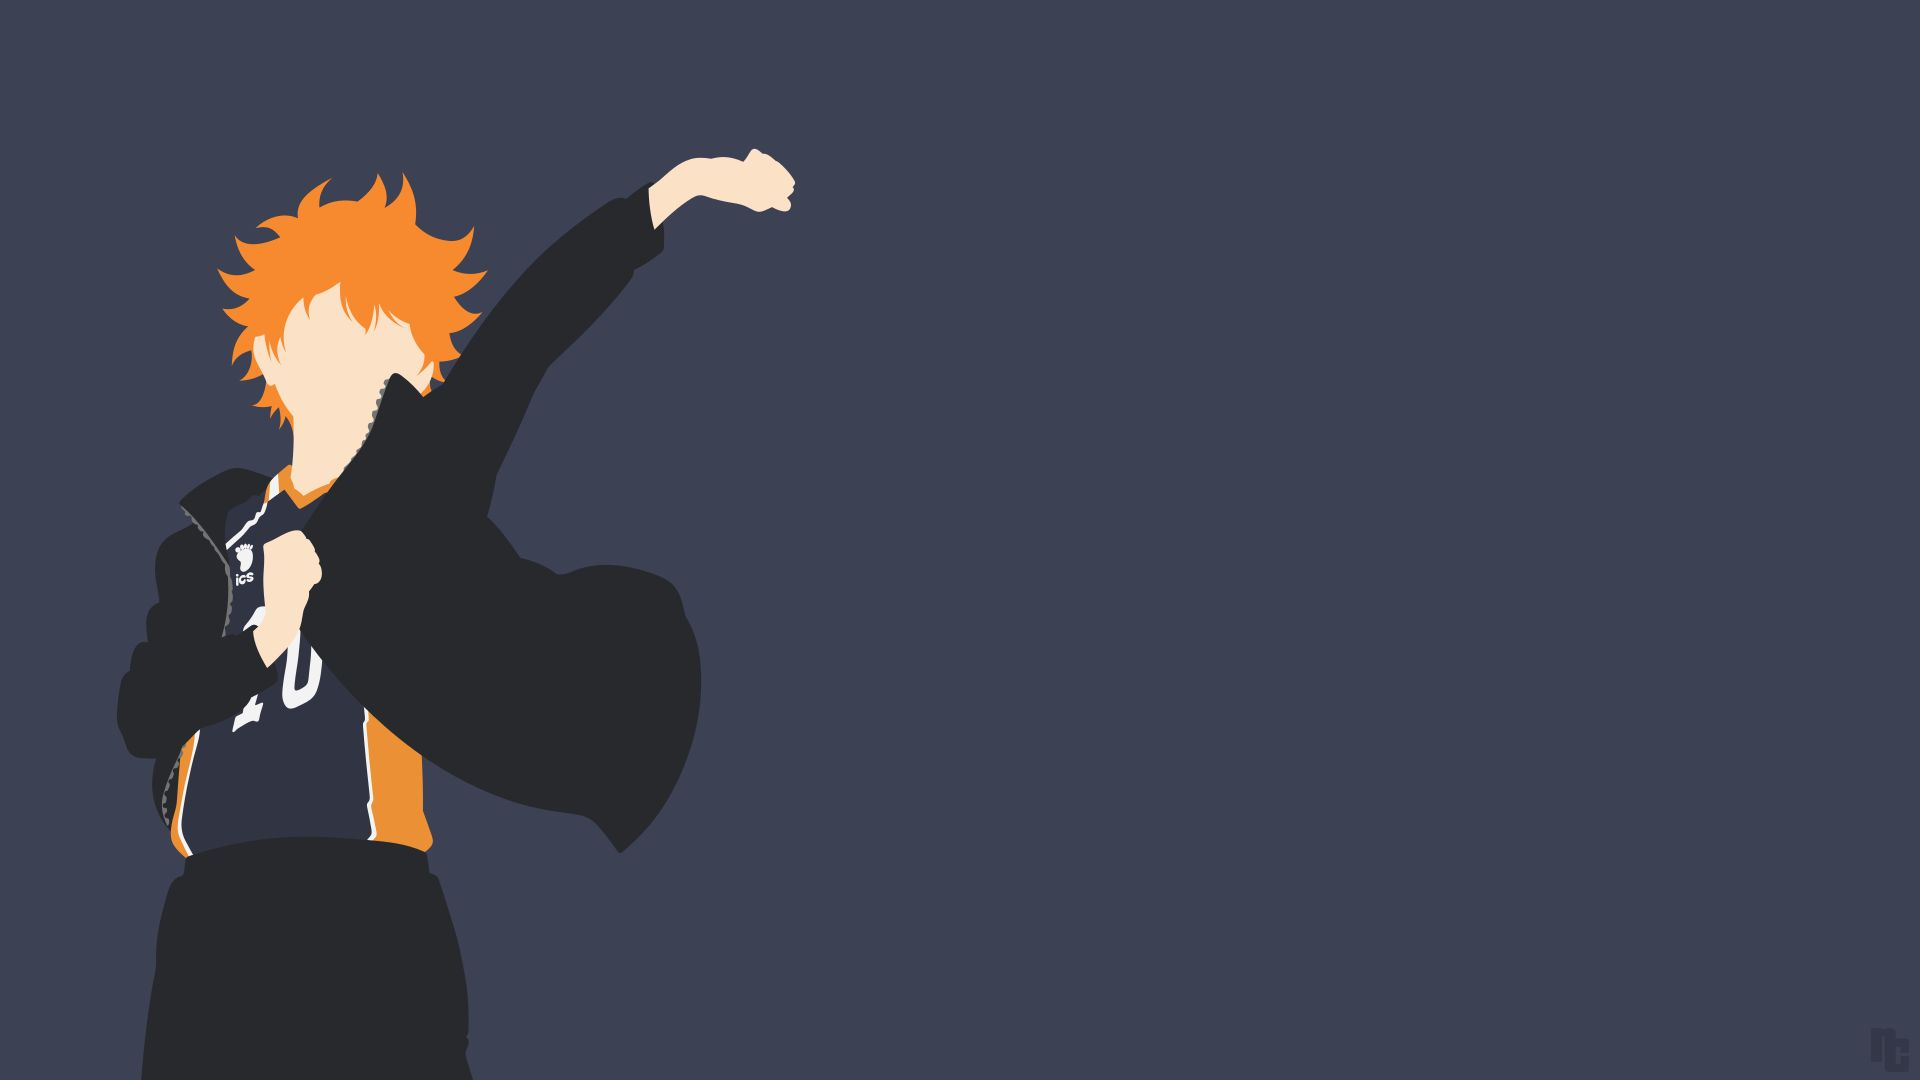 Haikyuu Wallpapers Posted By Ethan Peltier